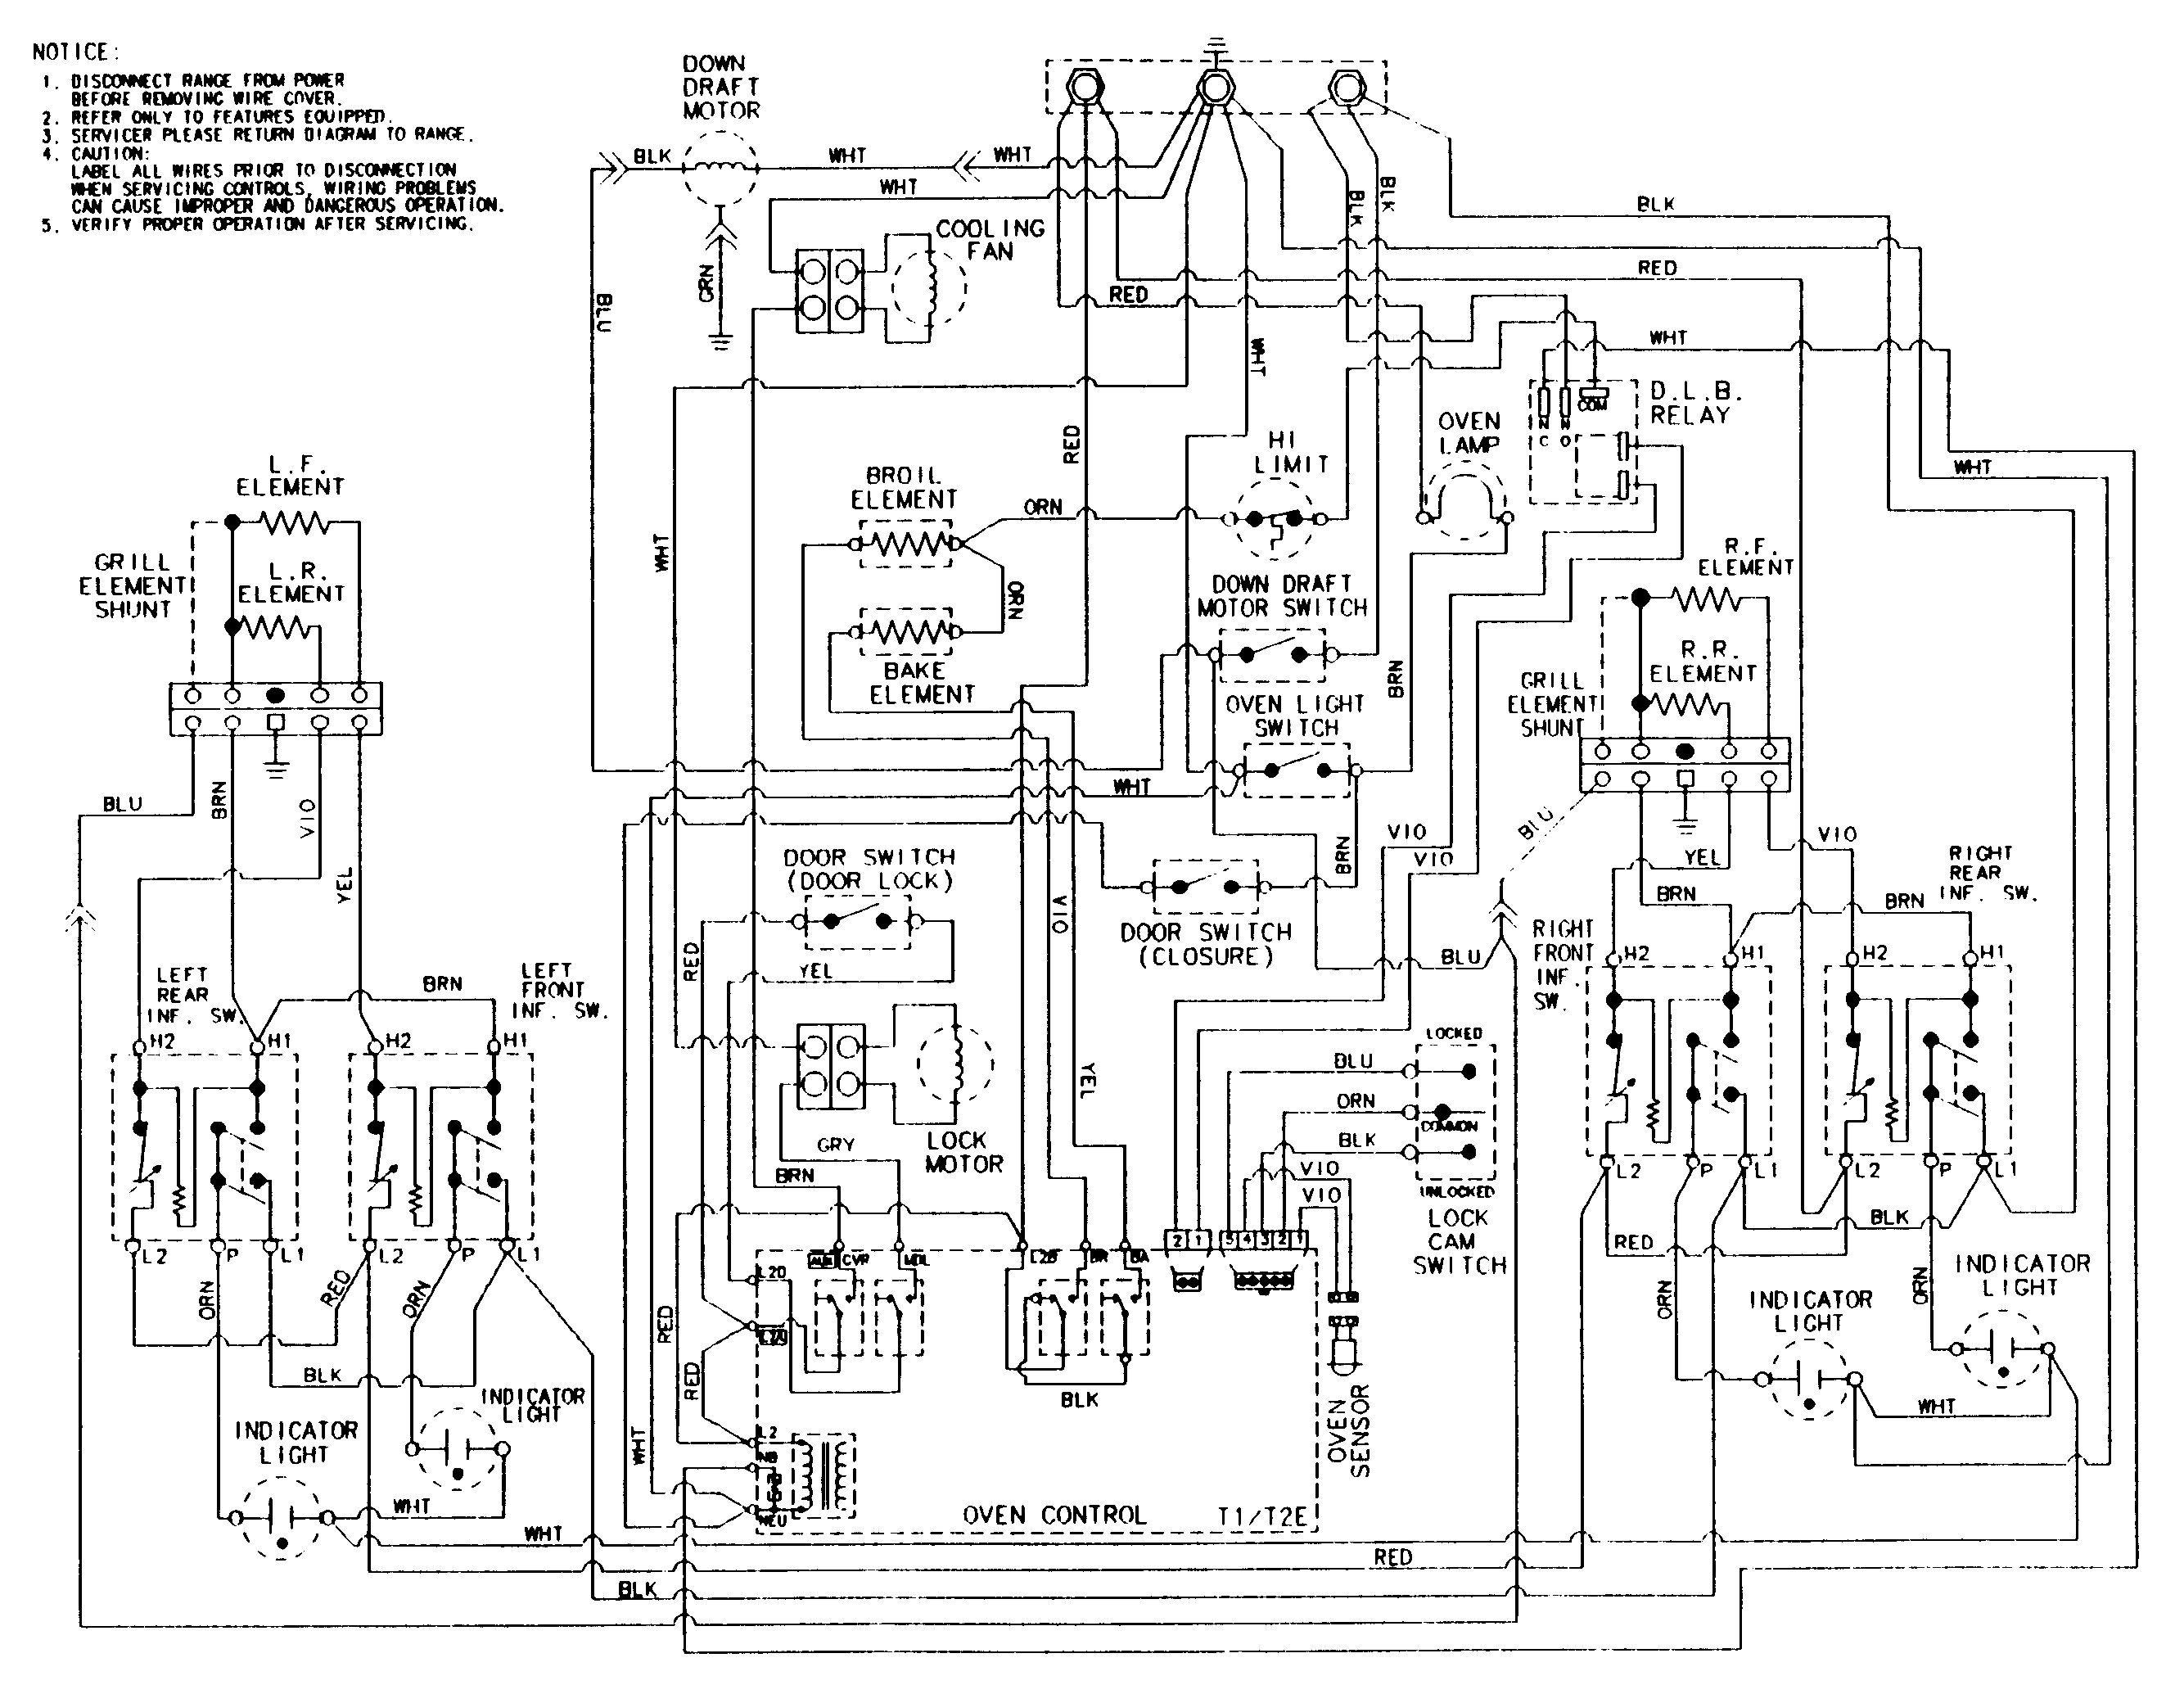 wiring information sve47100bc wc ser 14 parts electrical home wiring diagrams efcaviation com  at mifinder.co